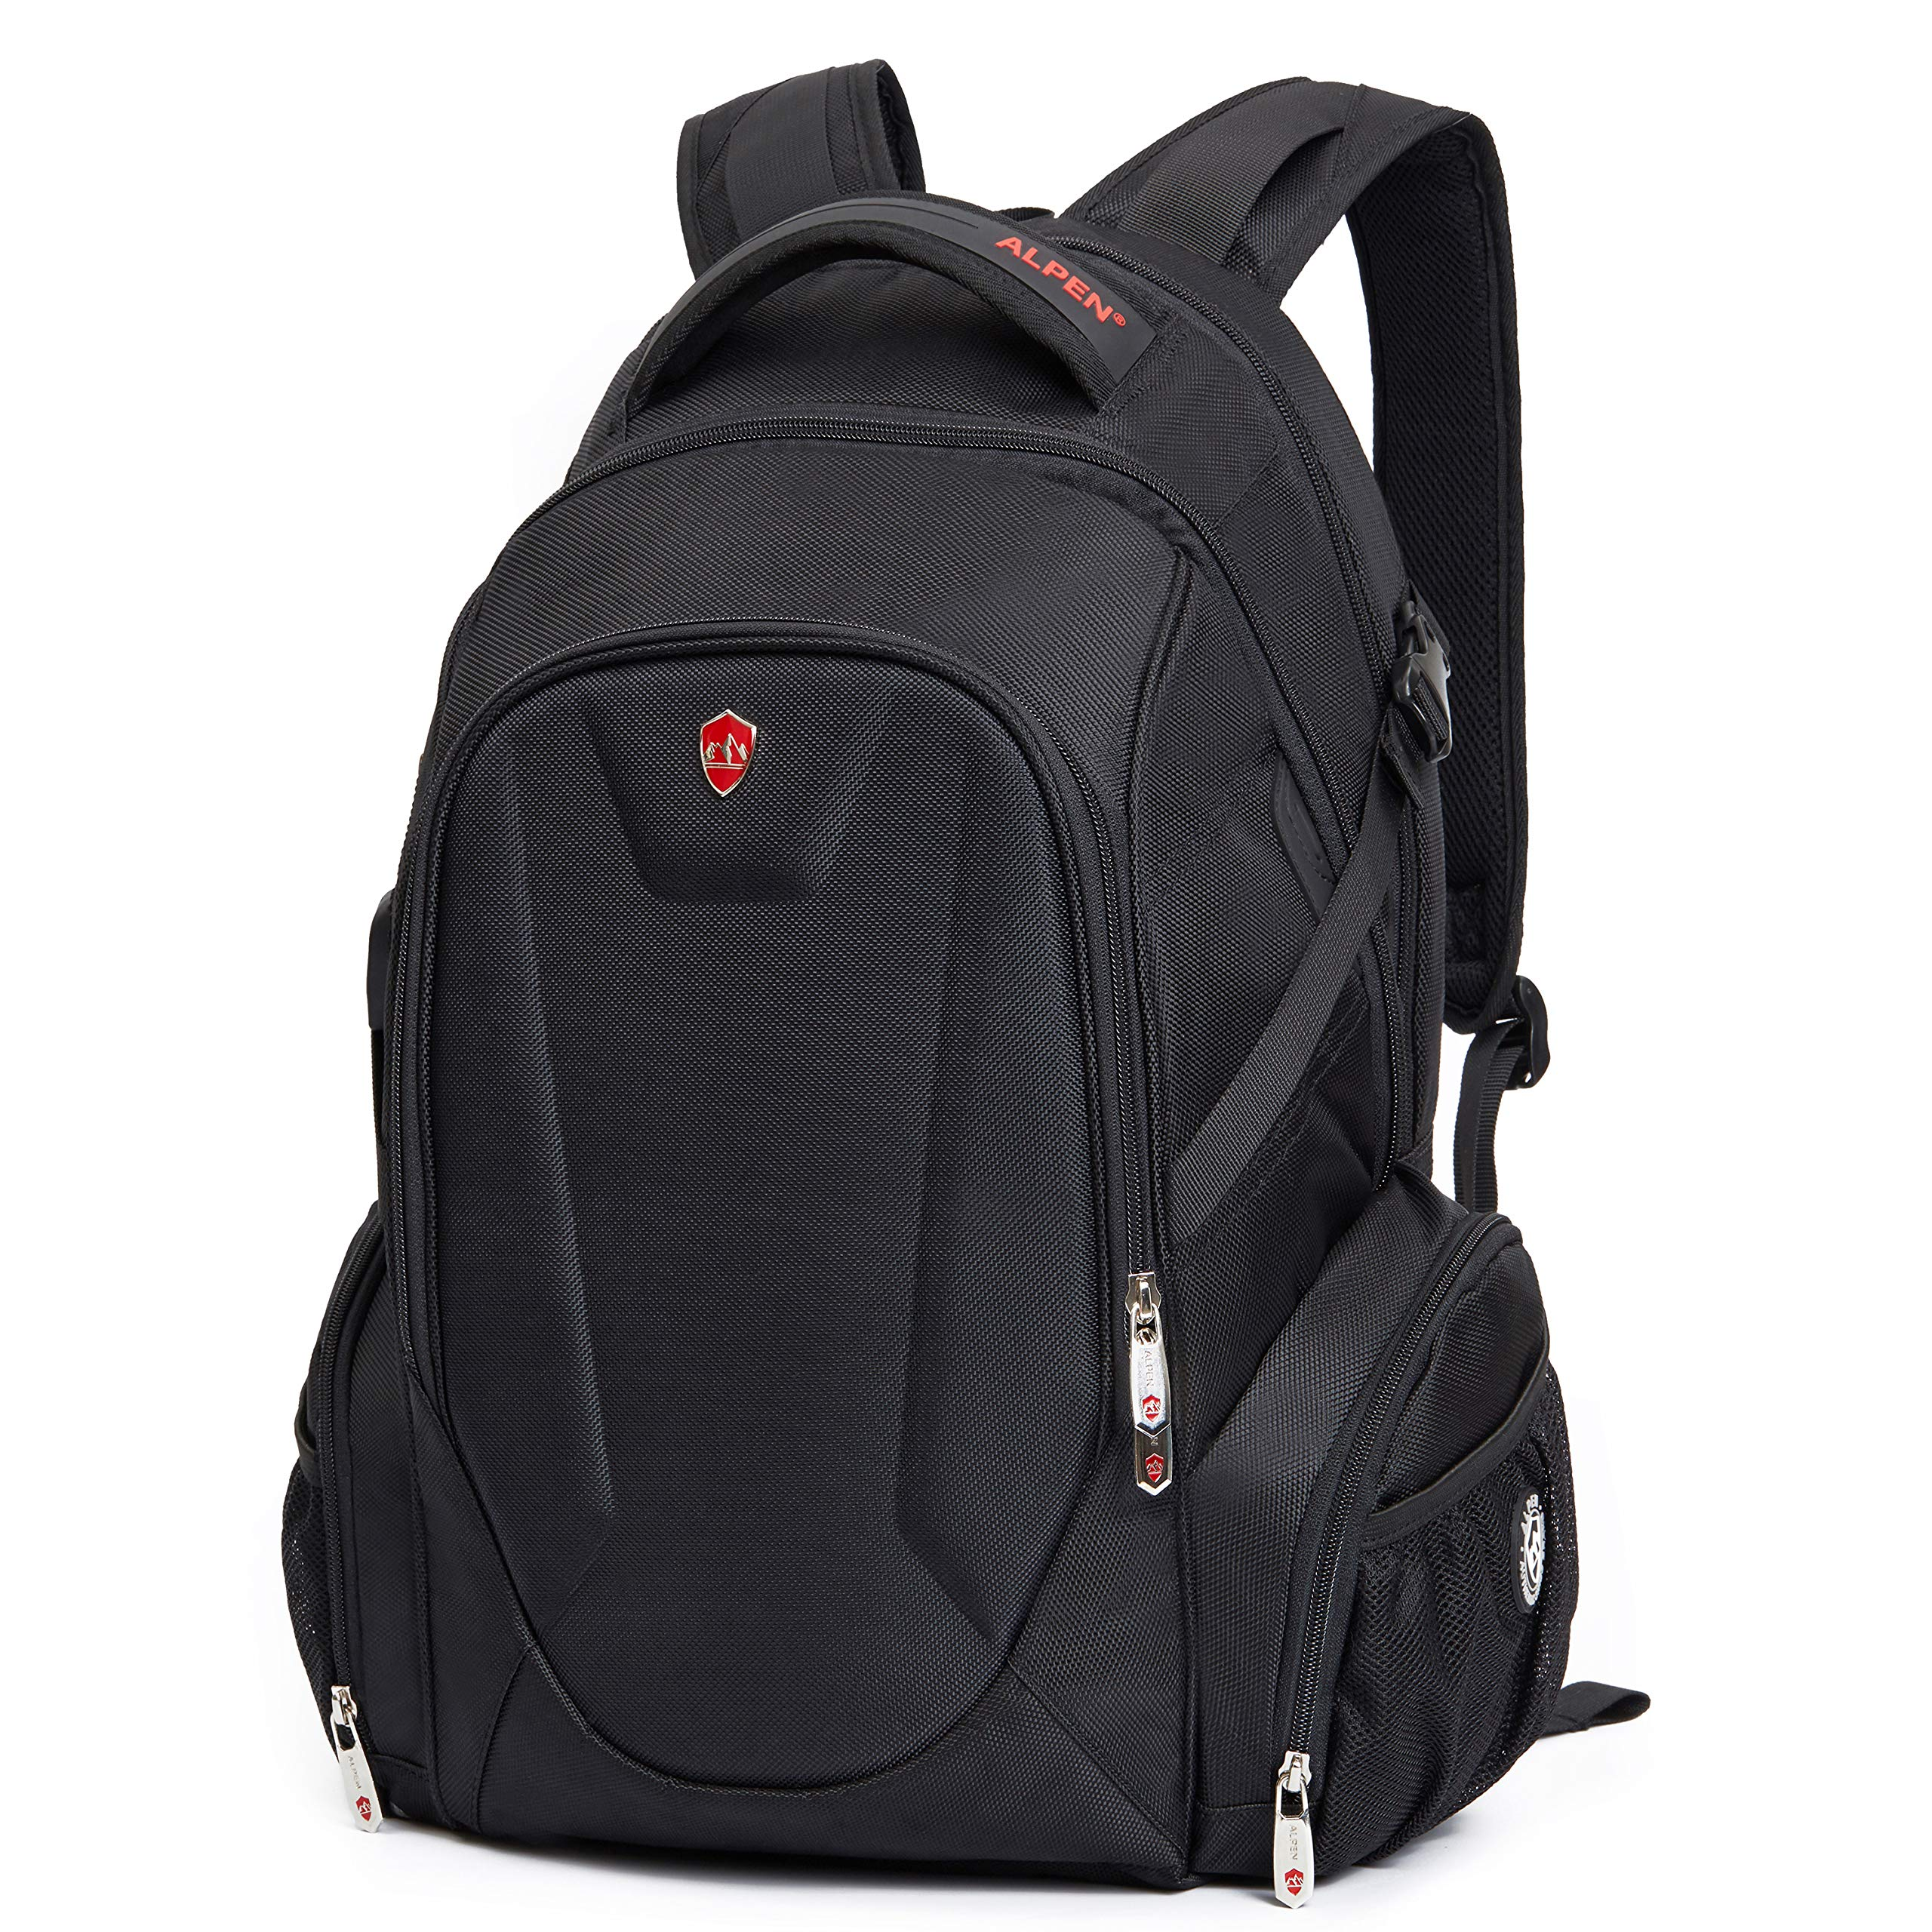 Swiss Alpen - Blanc Backpack - Water Resistant Durable 1680D Large Laptop Backpack for Travel, School & Business - Fits 15.6'' Laptop with USB Charging Port - Black Exclusive